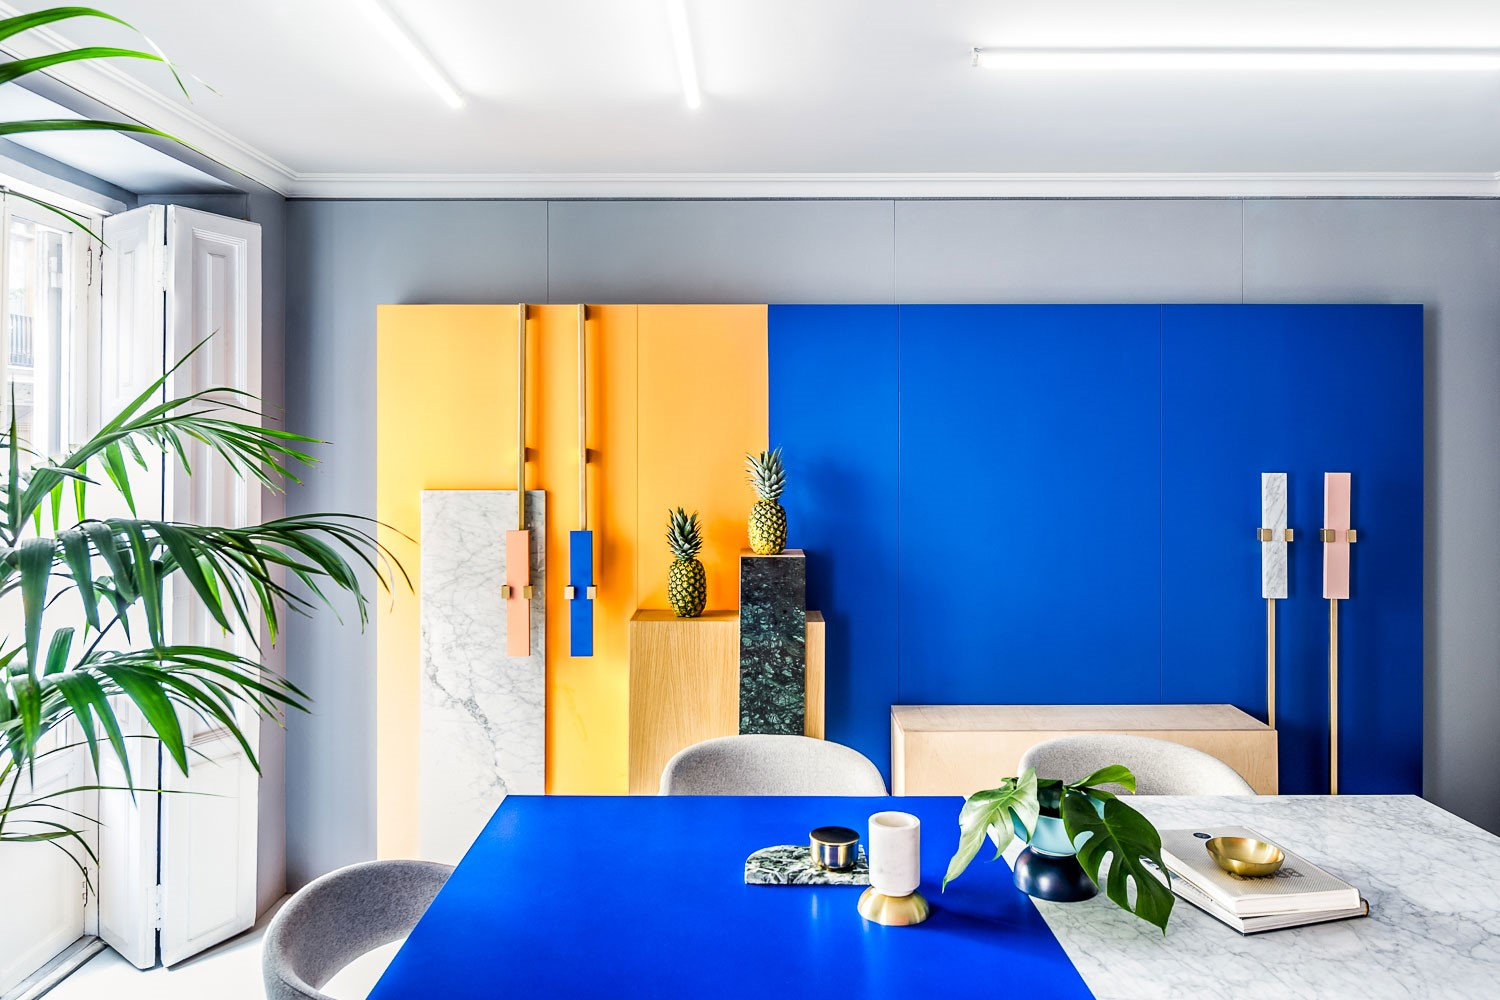 Masquespacios workspace, blue and yellow